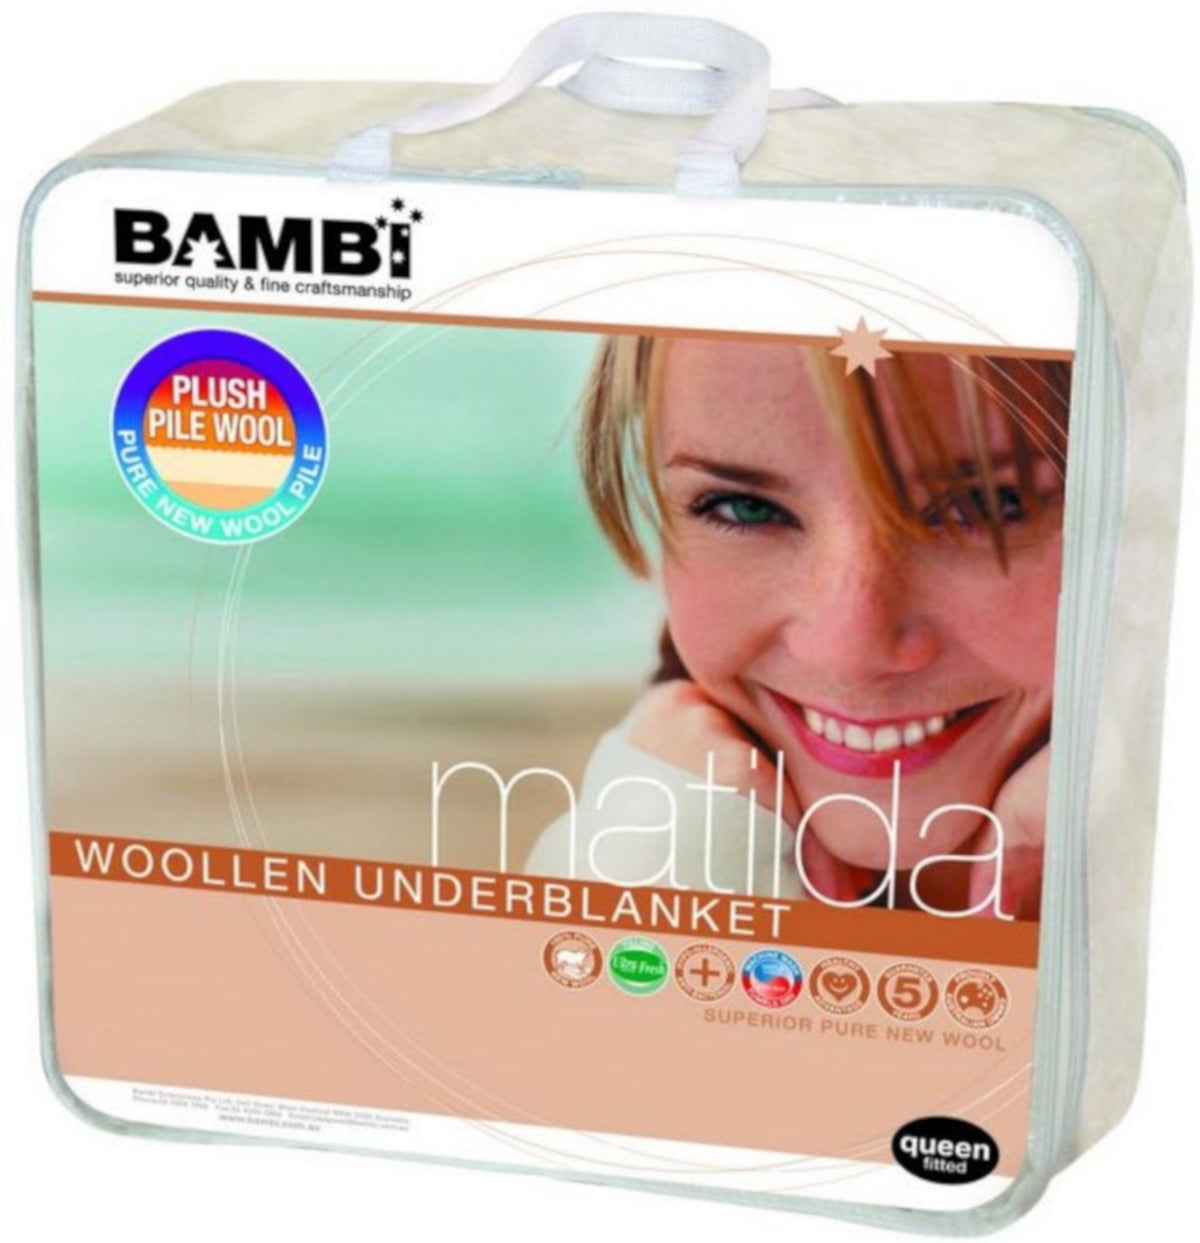 Bambi Matilda Single Layer Wool Underblanket